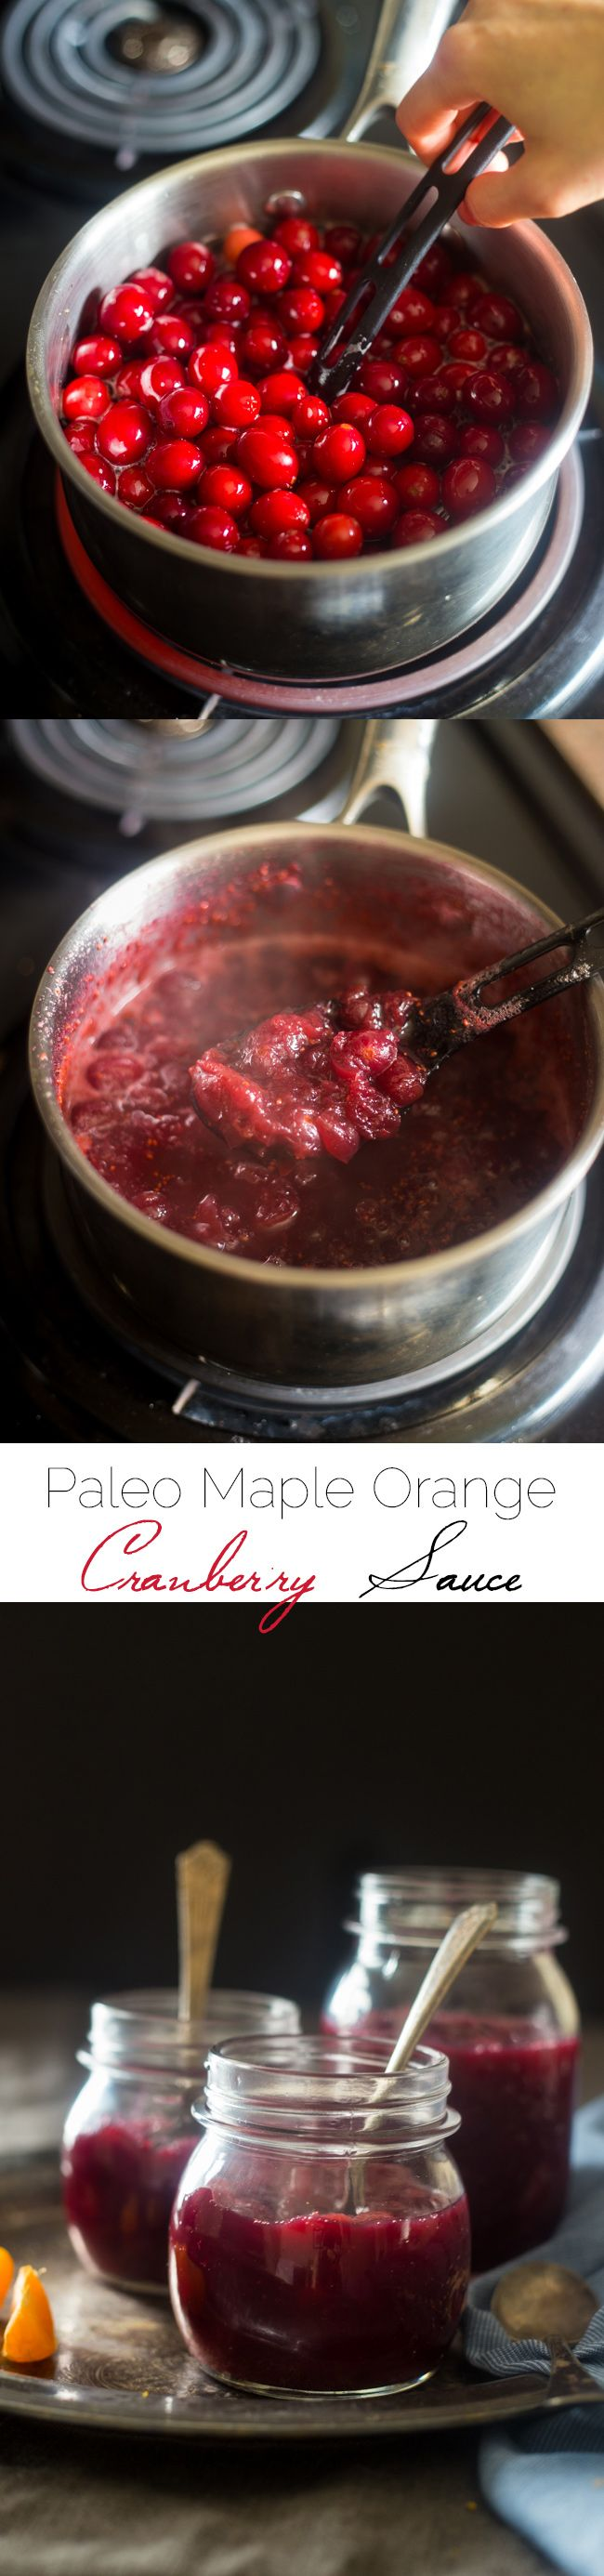 Paleo Maple Orange Cranberry Sauce - This healthy homemade cranberry sauce uses only 3 ingredients and is Paleo friendly and refined- sugar free! It's ready in 30 minutes and is perfect for Thanksgiving! | |